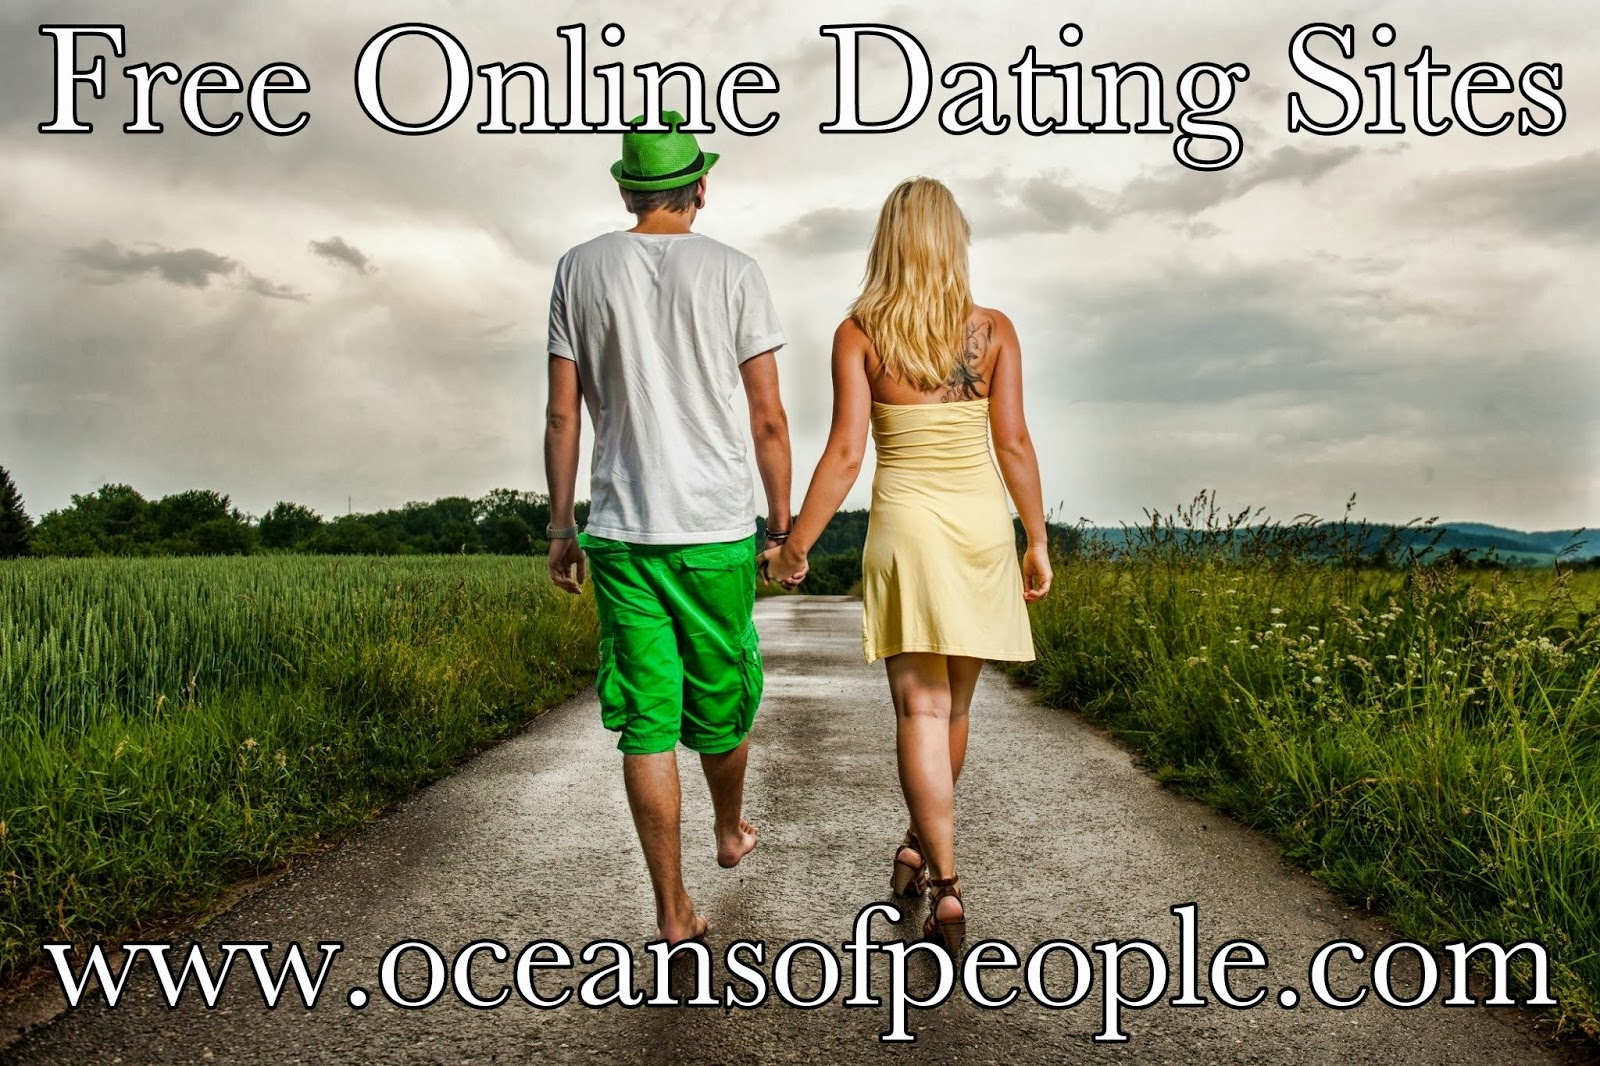 100% free online dating in martelle Meet dallas singles online & chat in the forums dhu is a 100% free dating site to find personals & casual encounters in dallas.